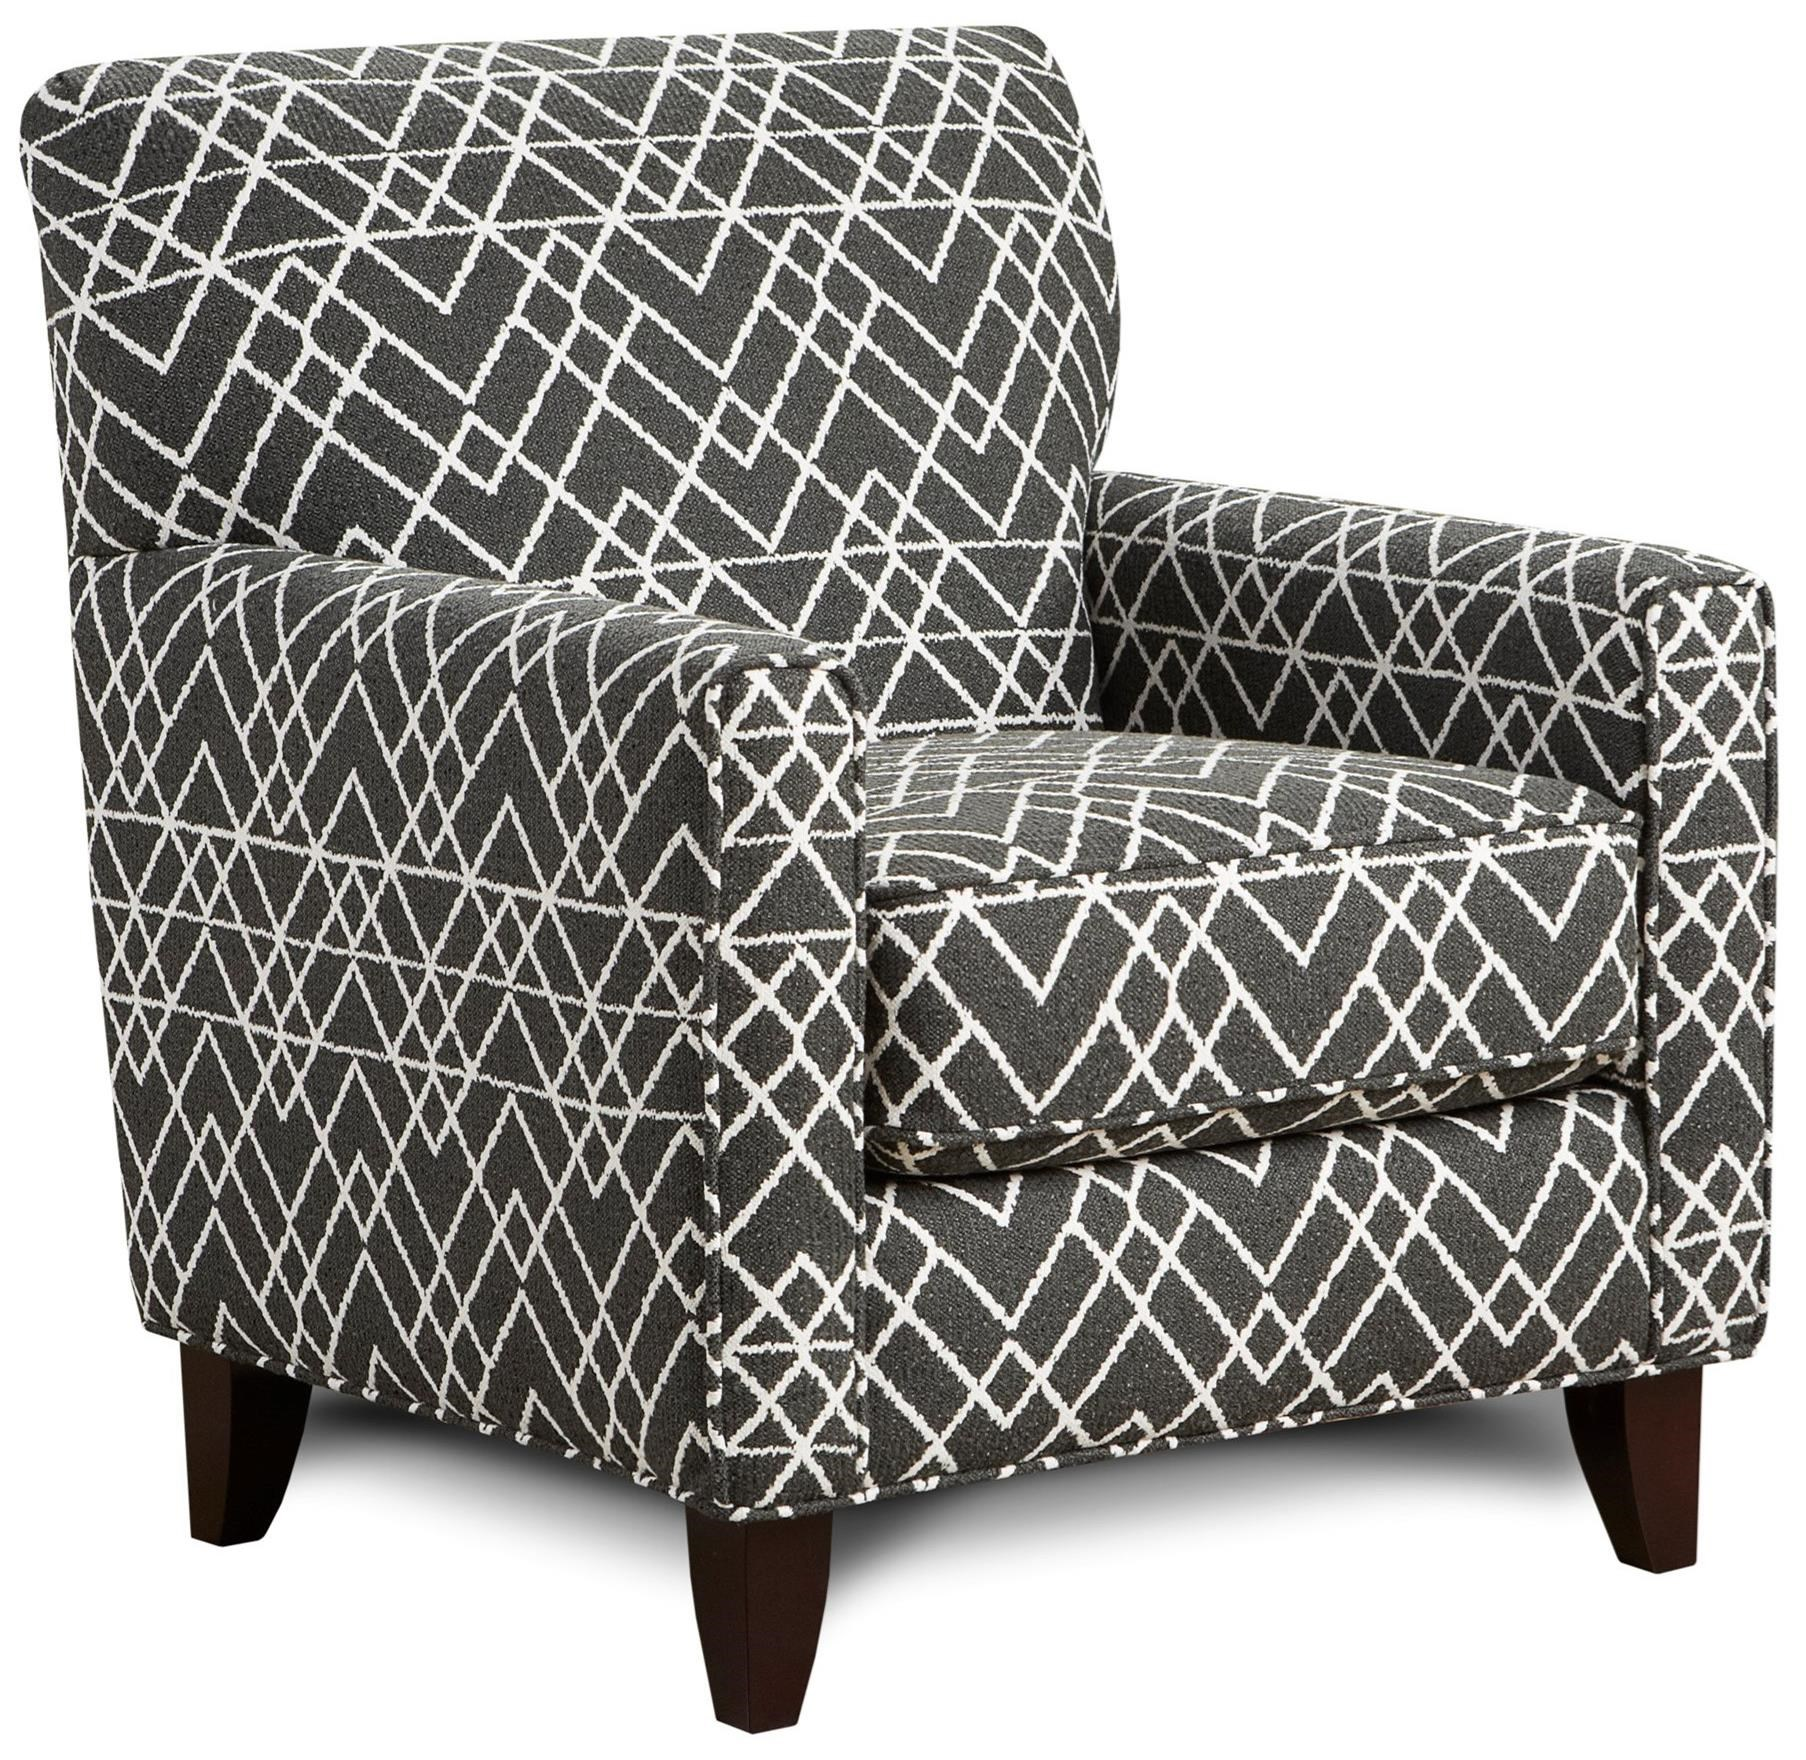 702 Accent Chair by Fusion Furniture at Lindy's Furniture Company